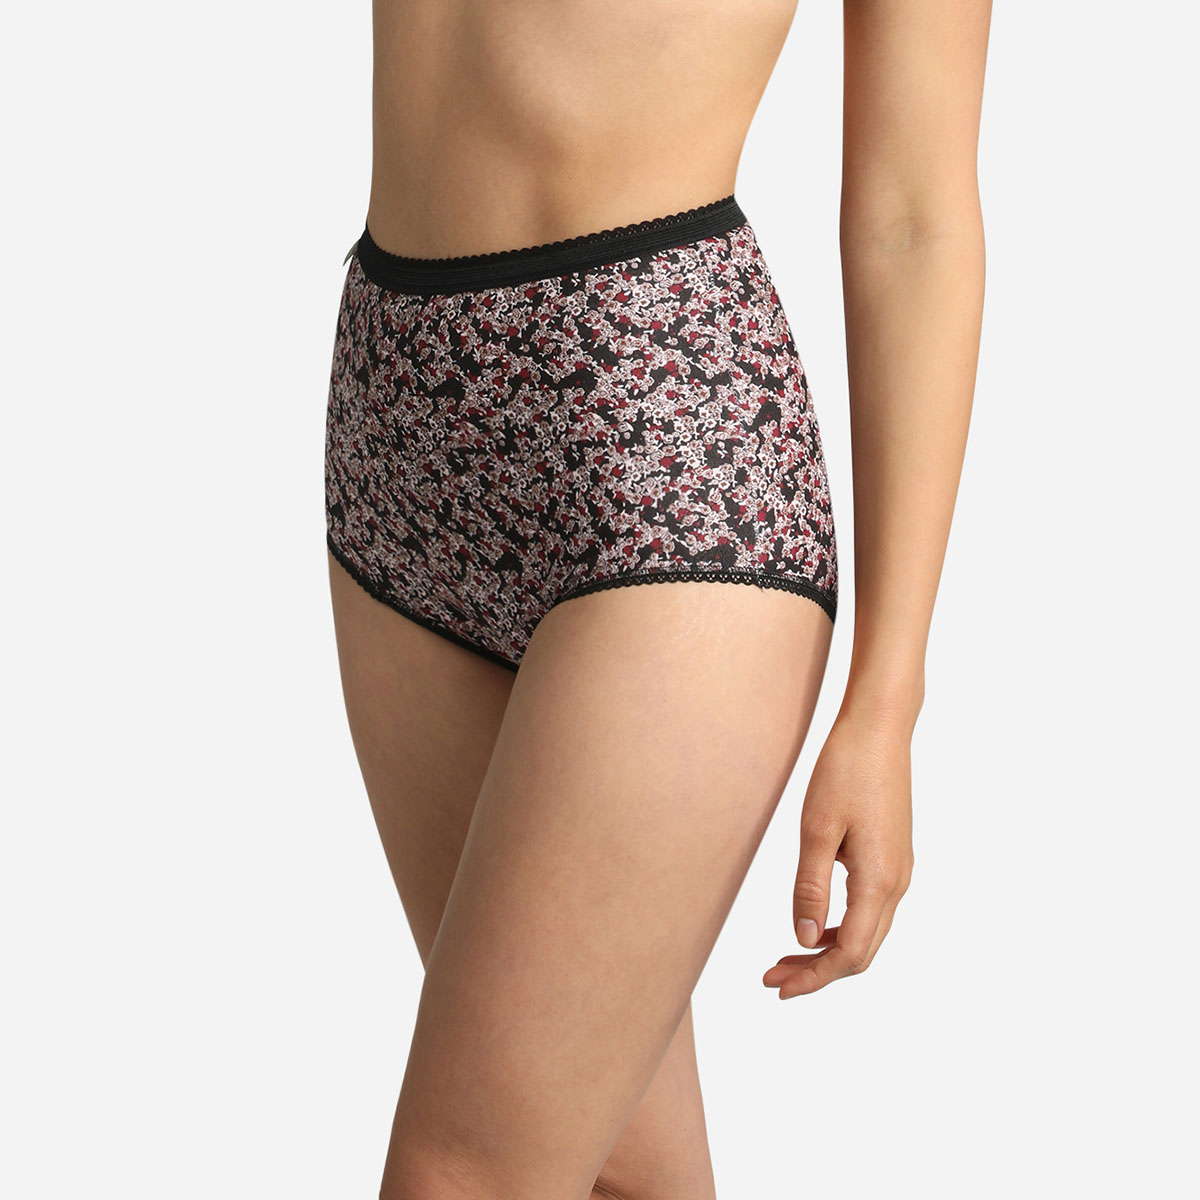 3 pack of full briefs in wild flower, red and white, , PLAYTEX